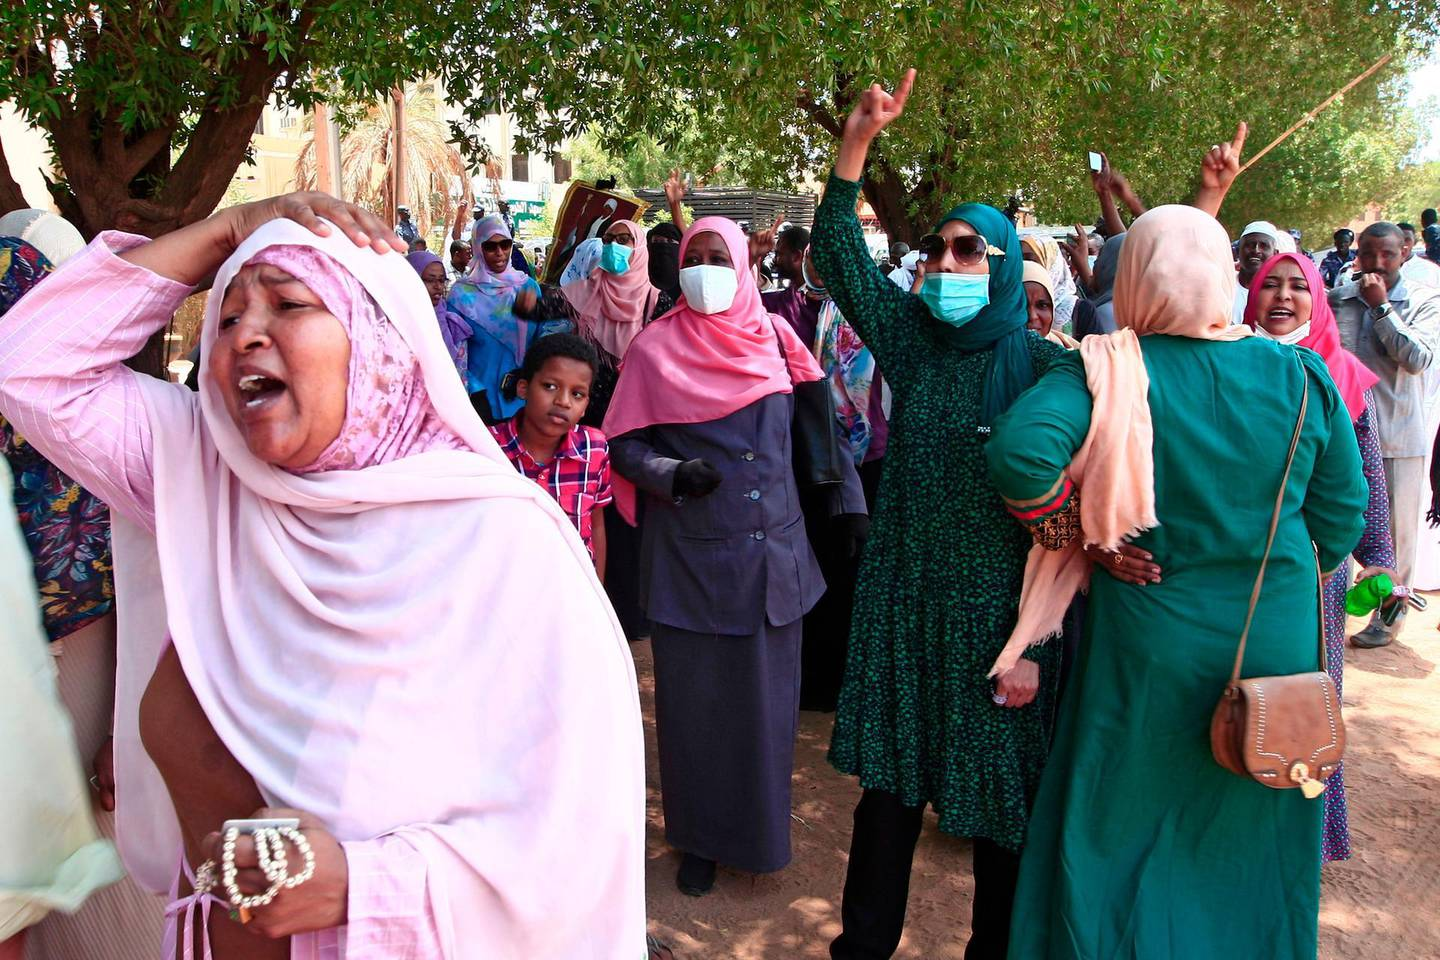 Family members of the accused rally outside the Khartoum courthouse during a trial session of Sudan's ousted president Omar al-Bashir along with others, in the Sudanese capital on August 25, 2020. The trial of Sudan's ousted president Omar al-Bashir, on charges related to the coup that brought him to power in 1989, was adjourned to September 1, the judge said.  / AFP / ASHRAF SHAZLY